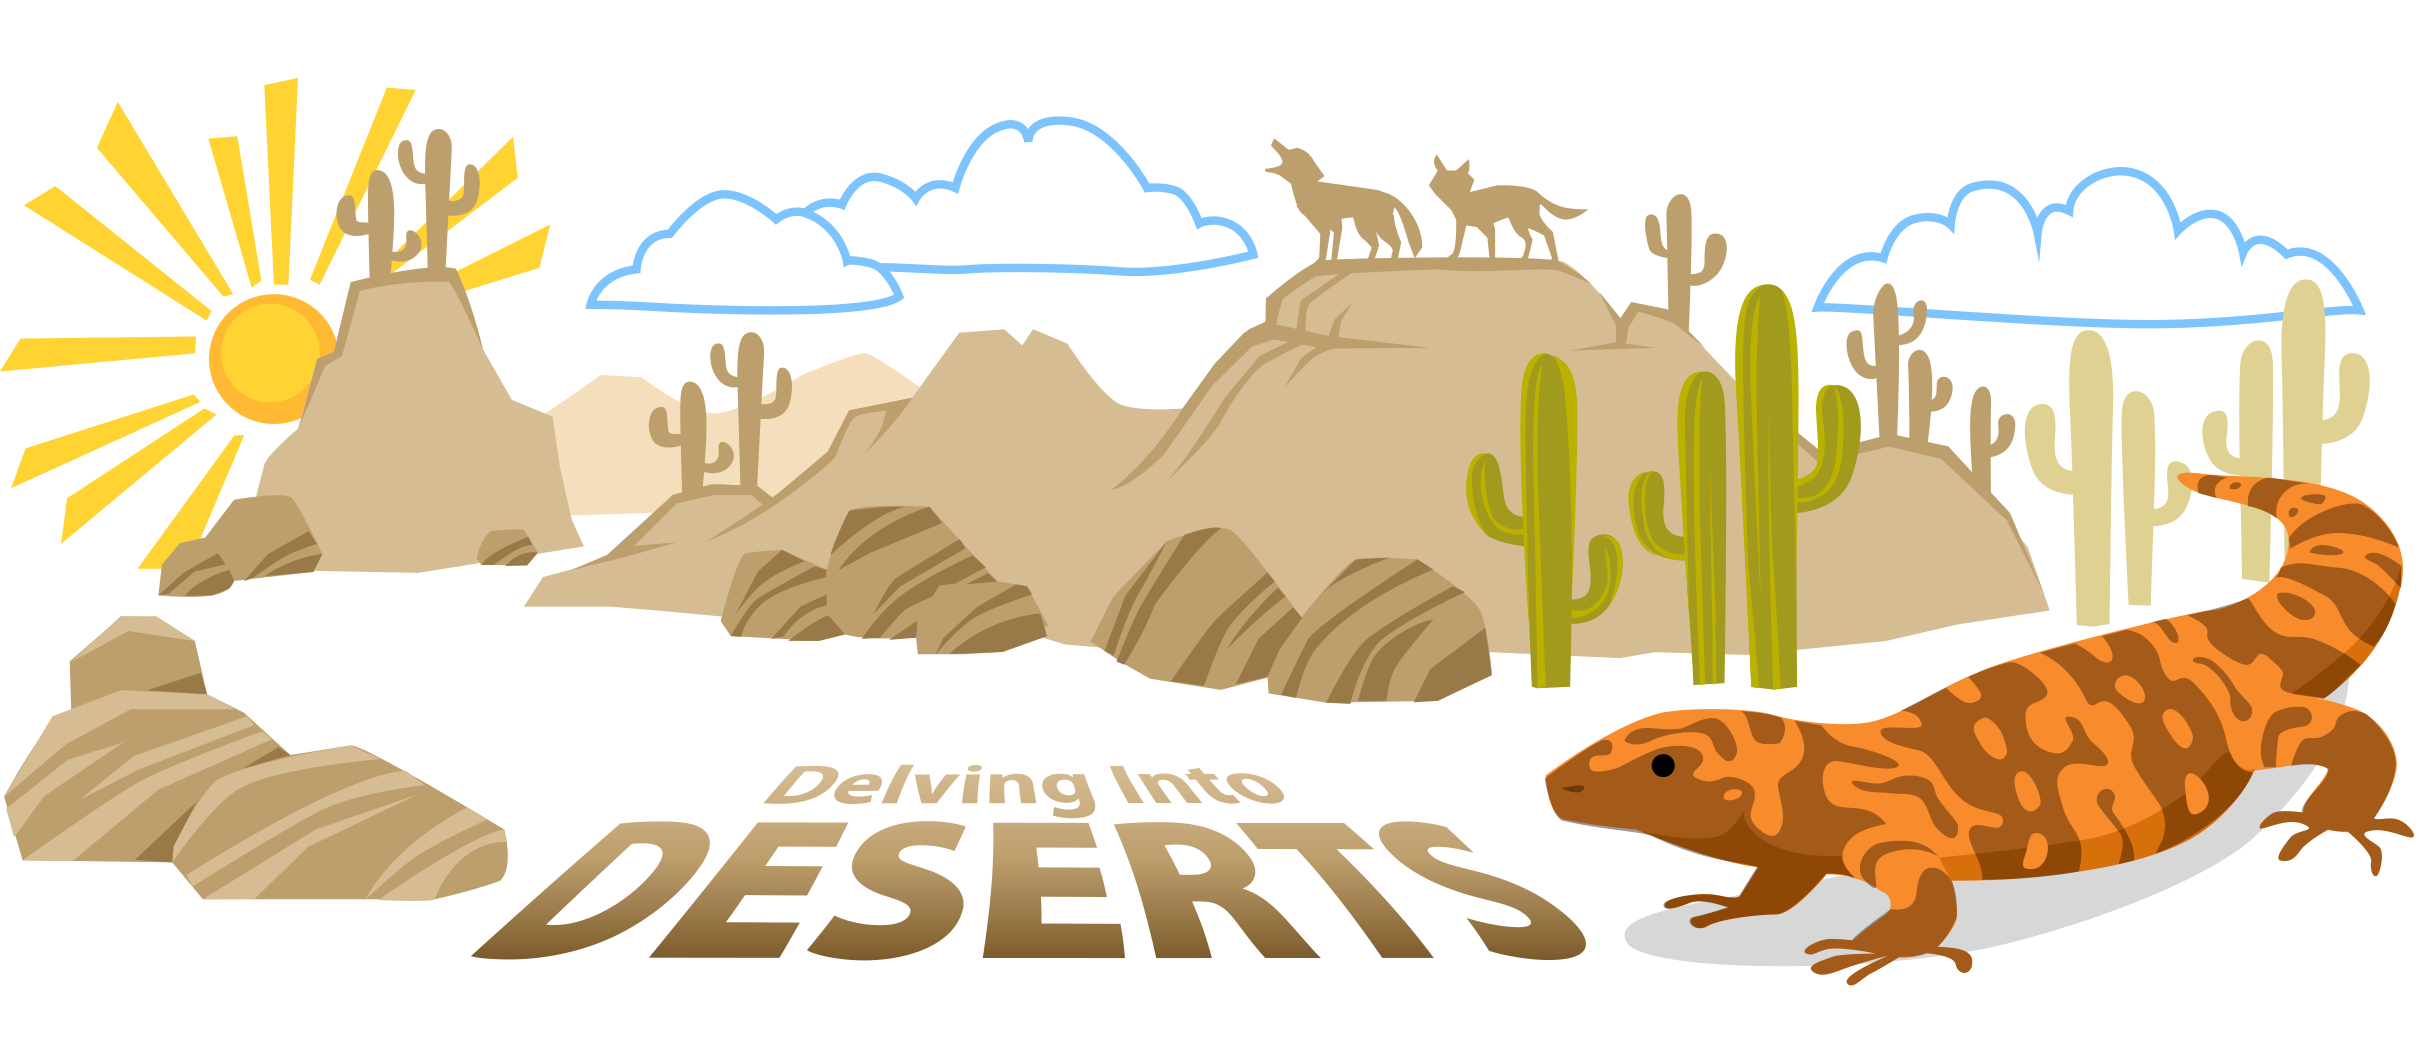 Teamwork clipart liberalism. Desert biome ask a